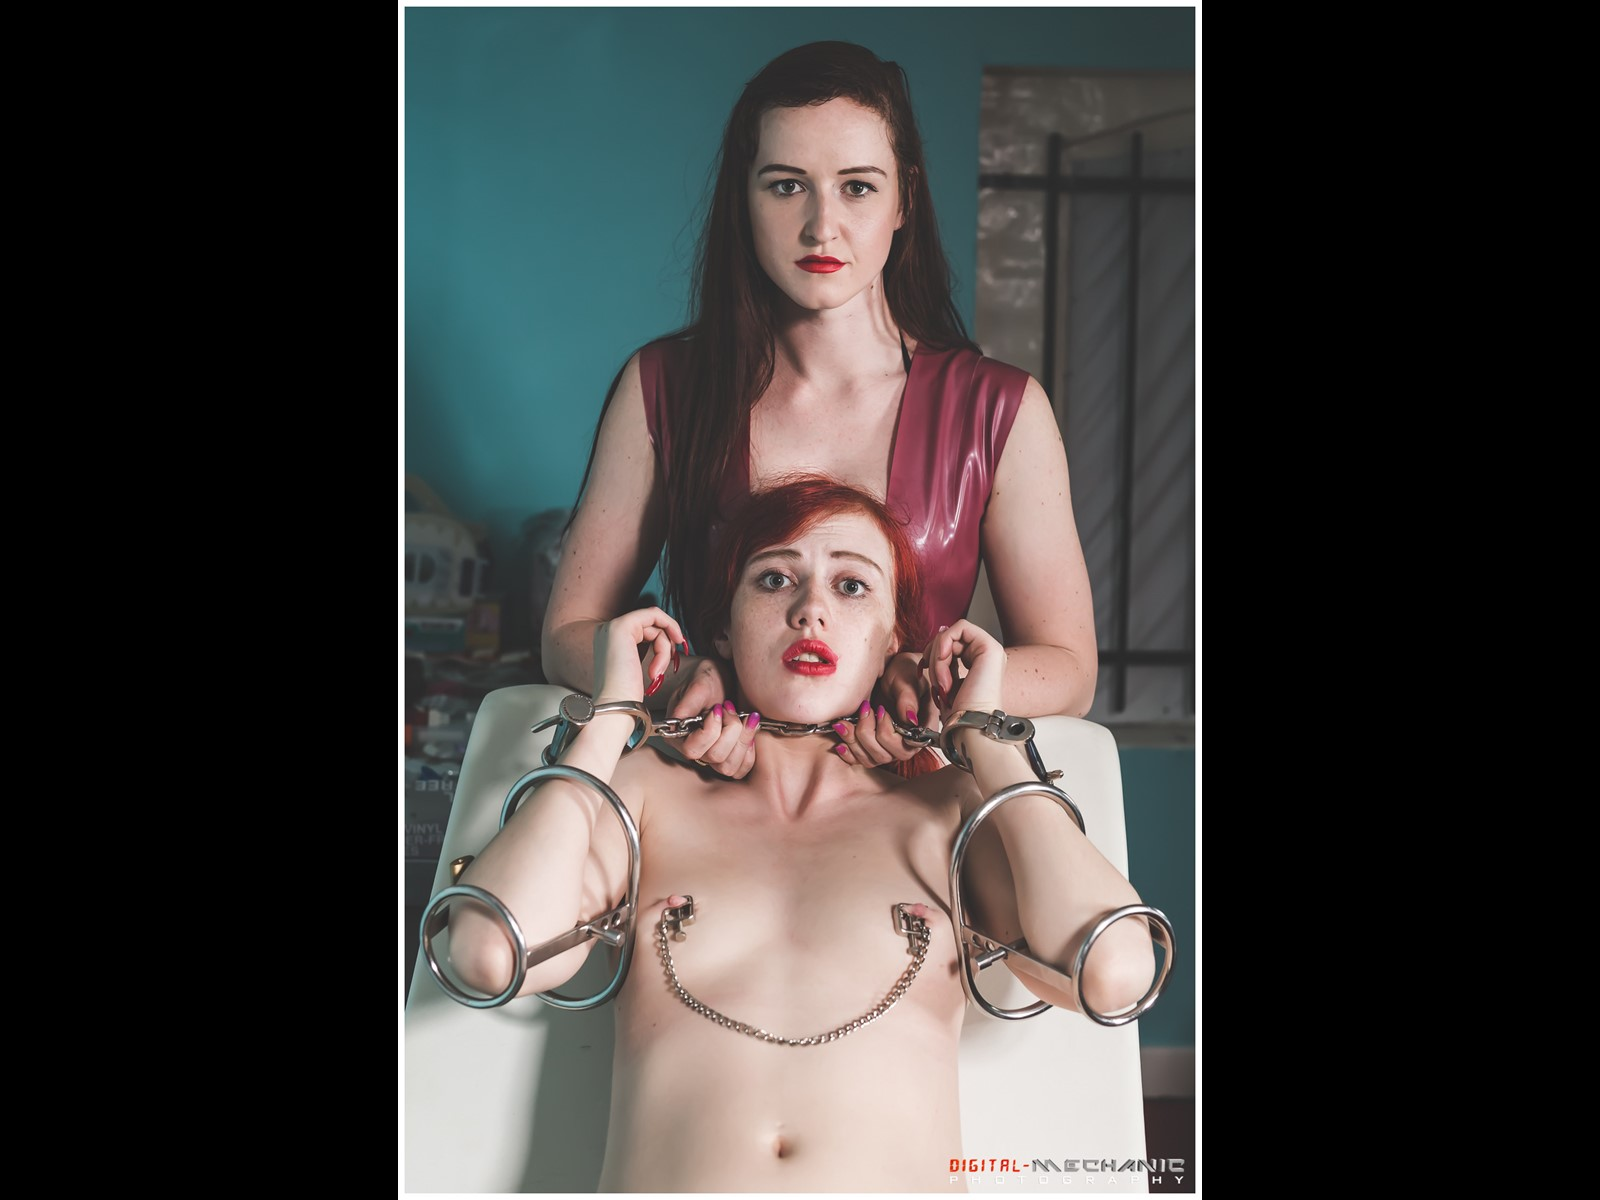 Elbow Restraints Medical Fetish Handcuffs shackles slave girl female patient